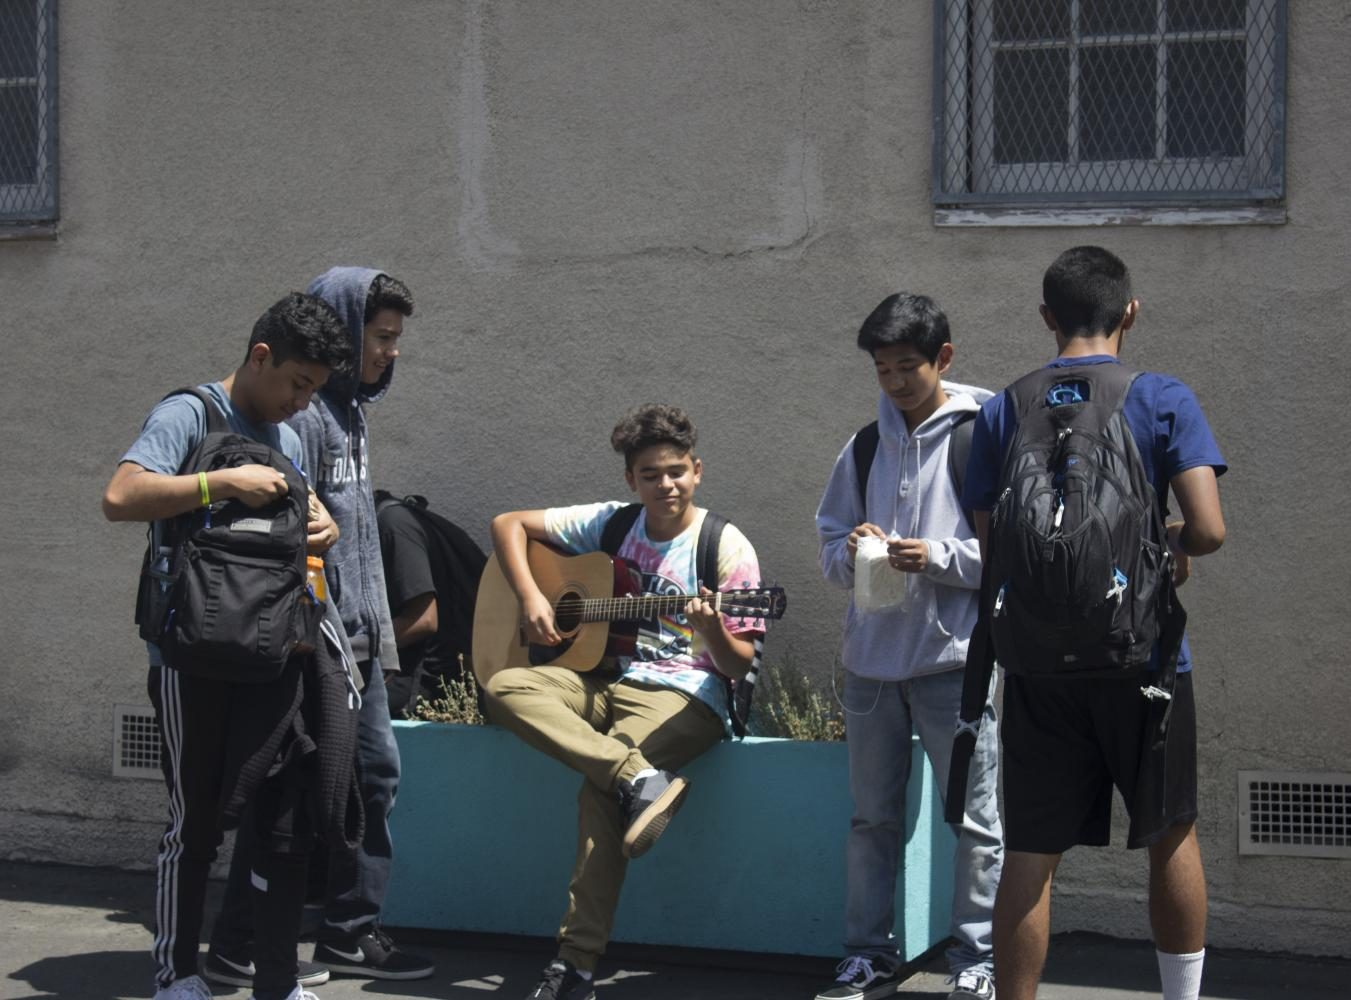 Daniel Lopez plays the guitar while his friends group around him to hear his groovy music.